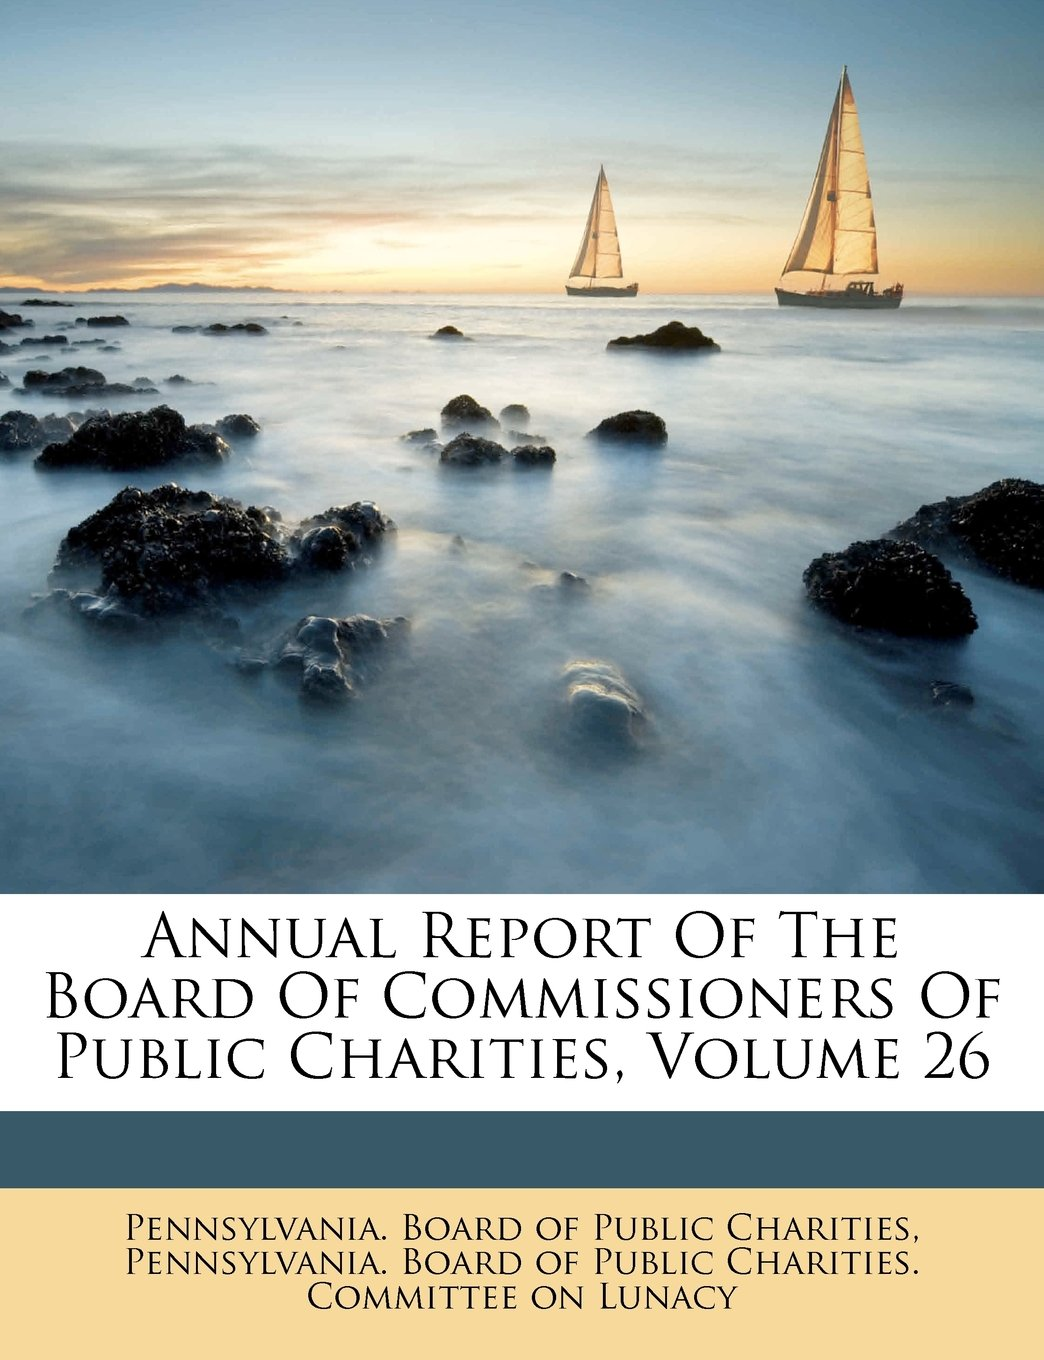 Annual Report Of The Board Of Commissioners Of Public Charities, Volume 26 PDF